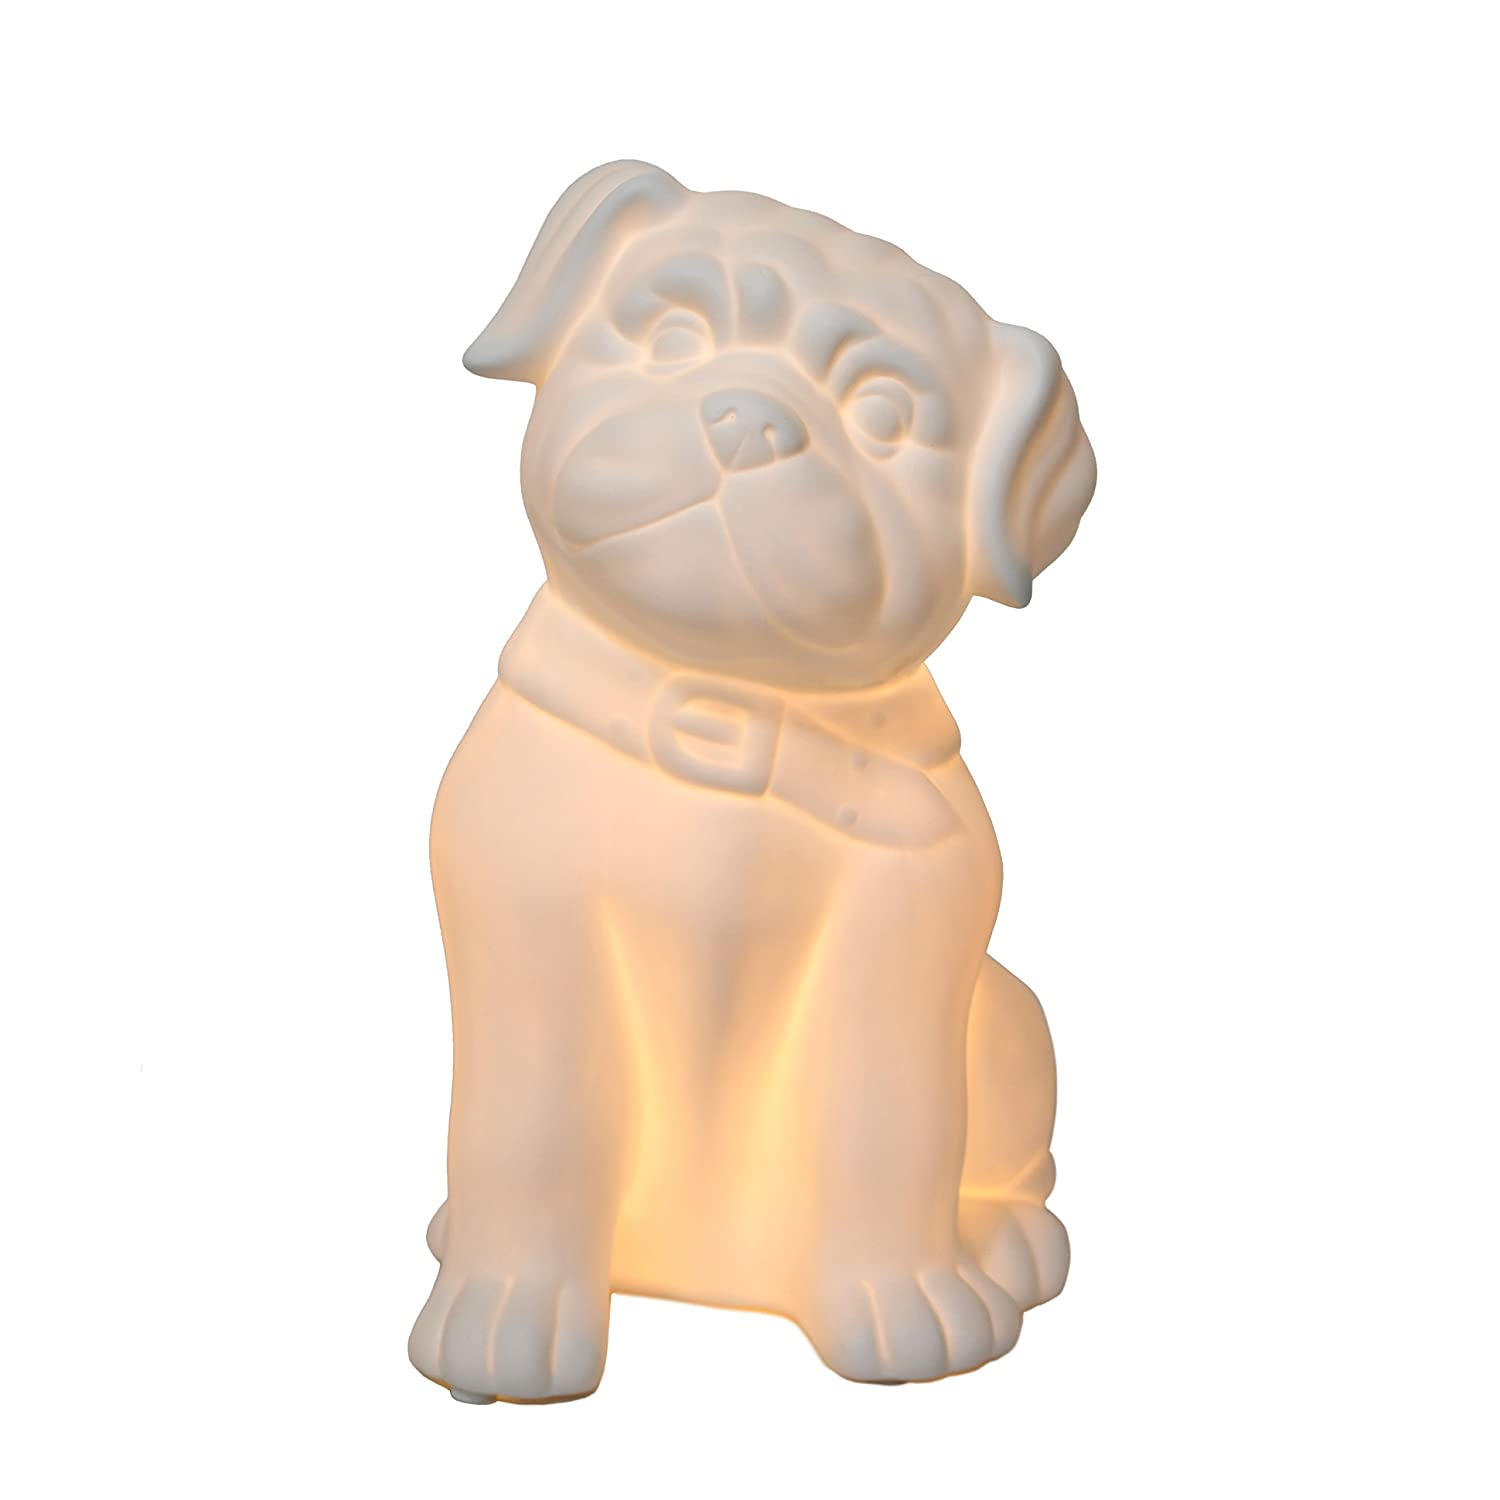 Amazon simple designs home lt3212 wht porcelain puppy dog amazon simple designs home lt3212 wht porcelain puppy dog shaped animal light table lamp white home improvement geotapseo Gallery